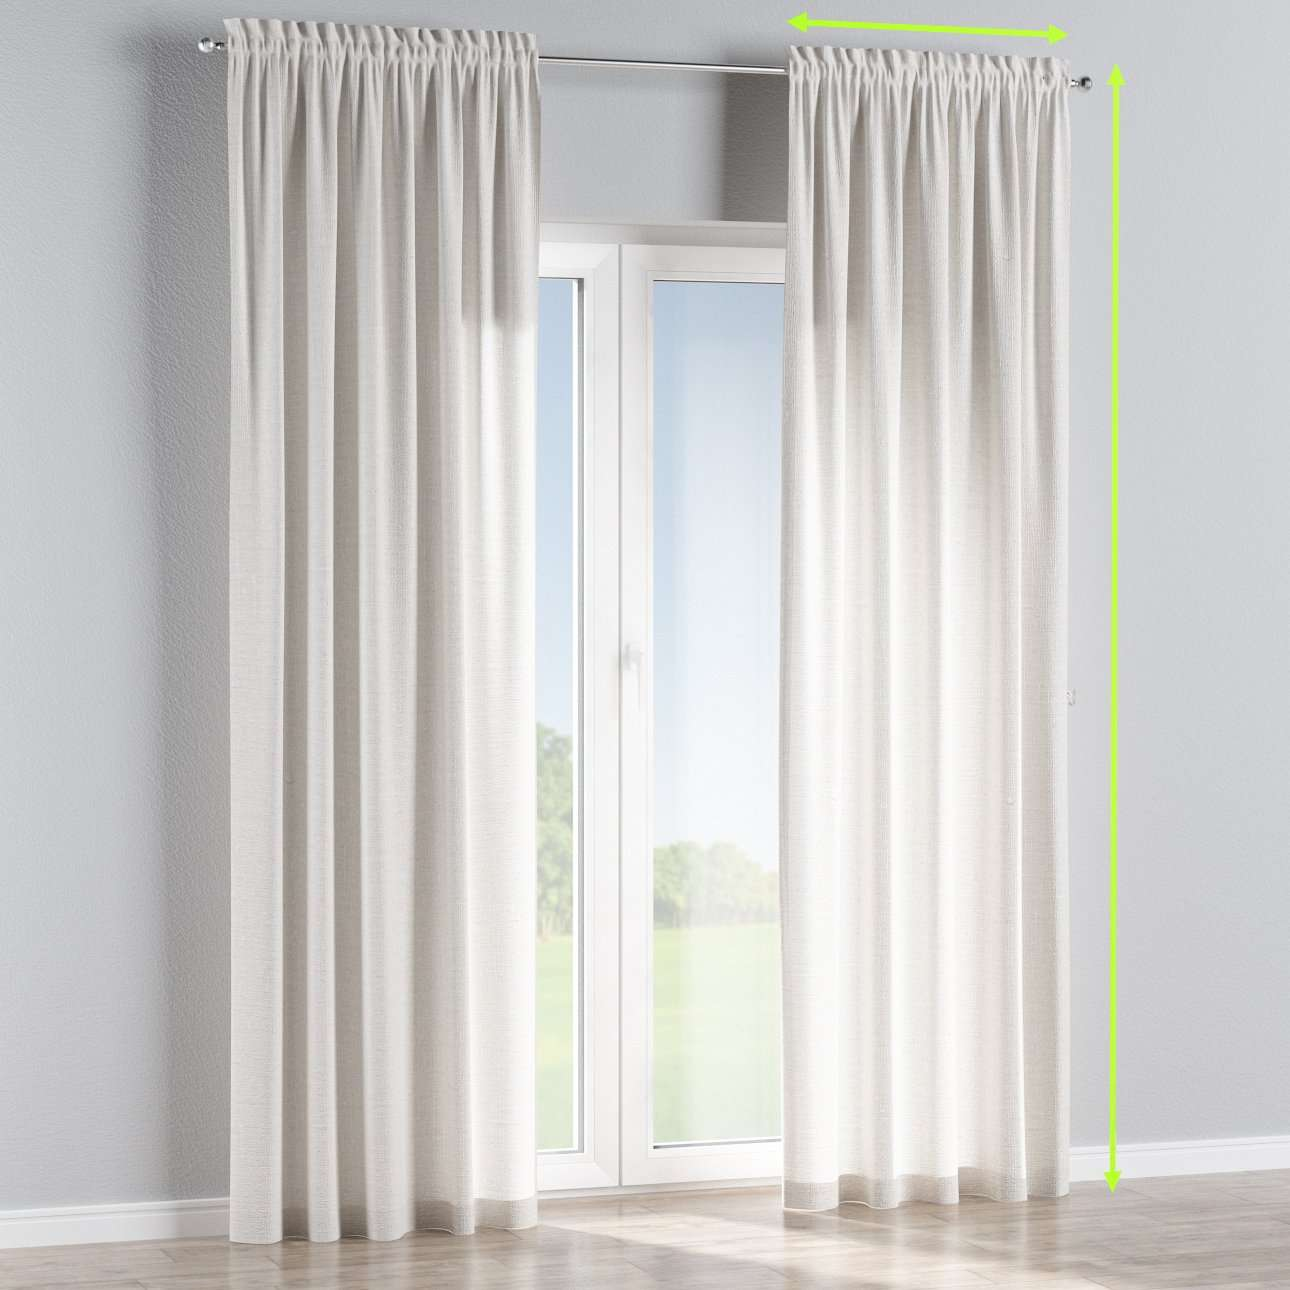 Slot and frill lined curtains in collection Linen, fabric: 392-04